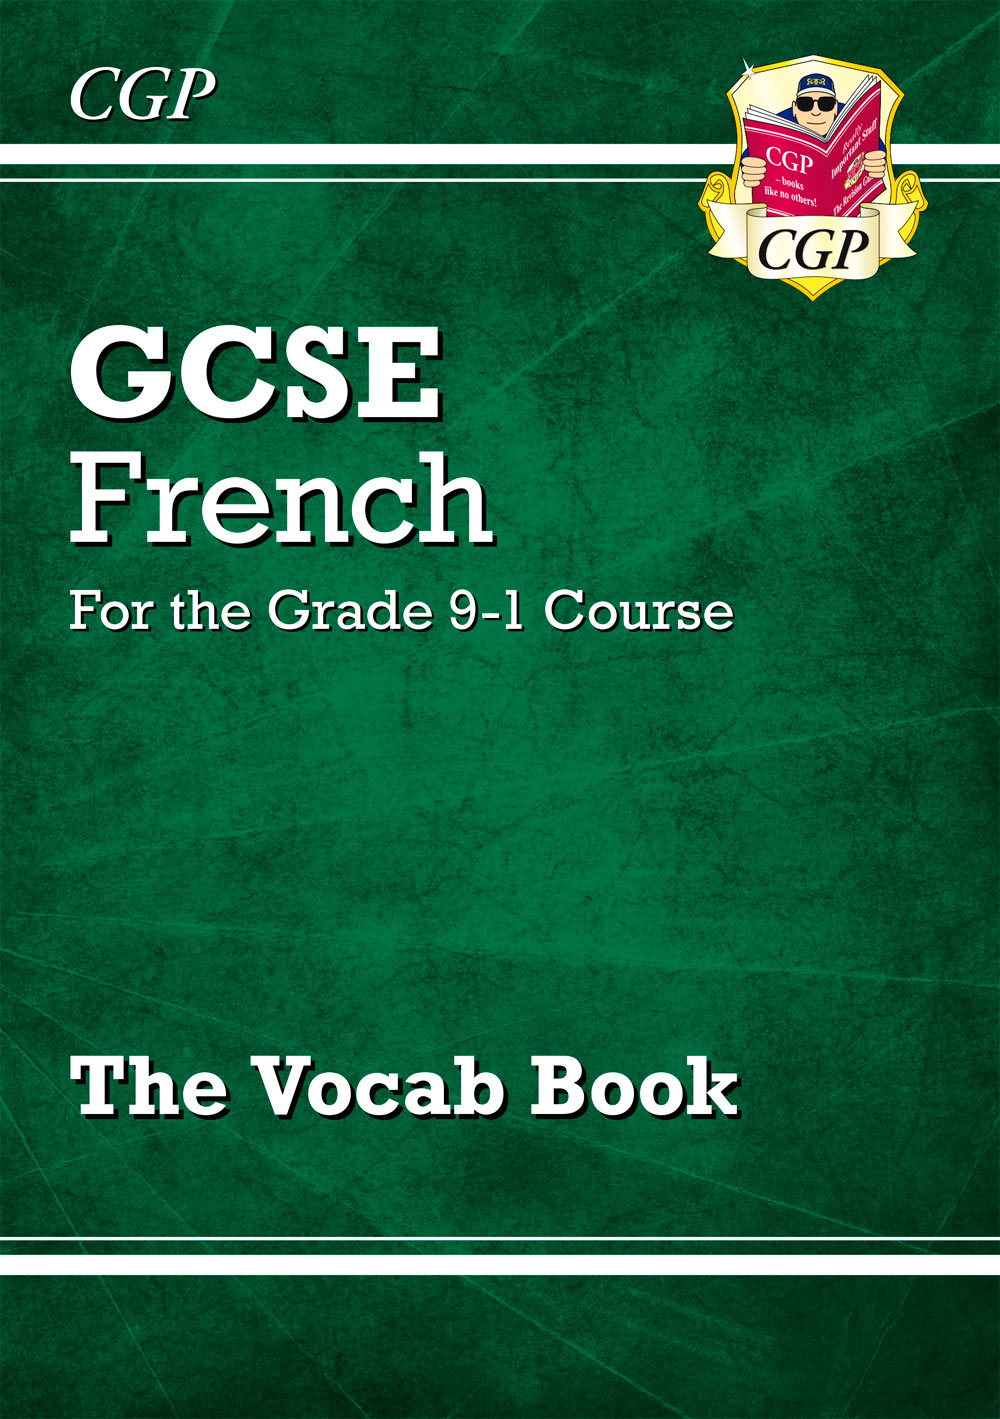 FHV41 - New GCSE French Vocab Book - for the Grade 9-1 Course